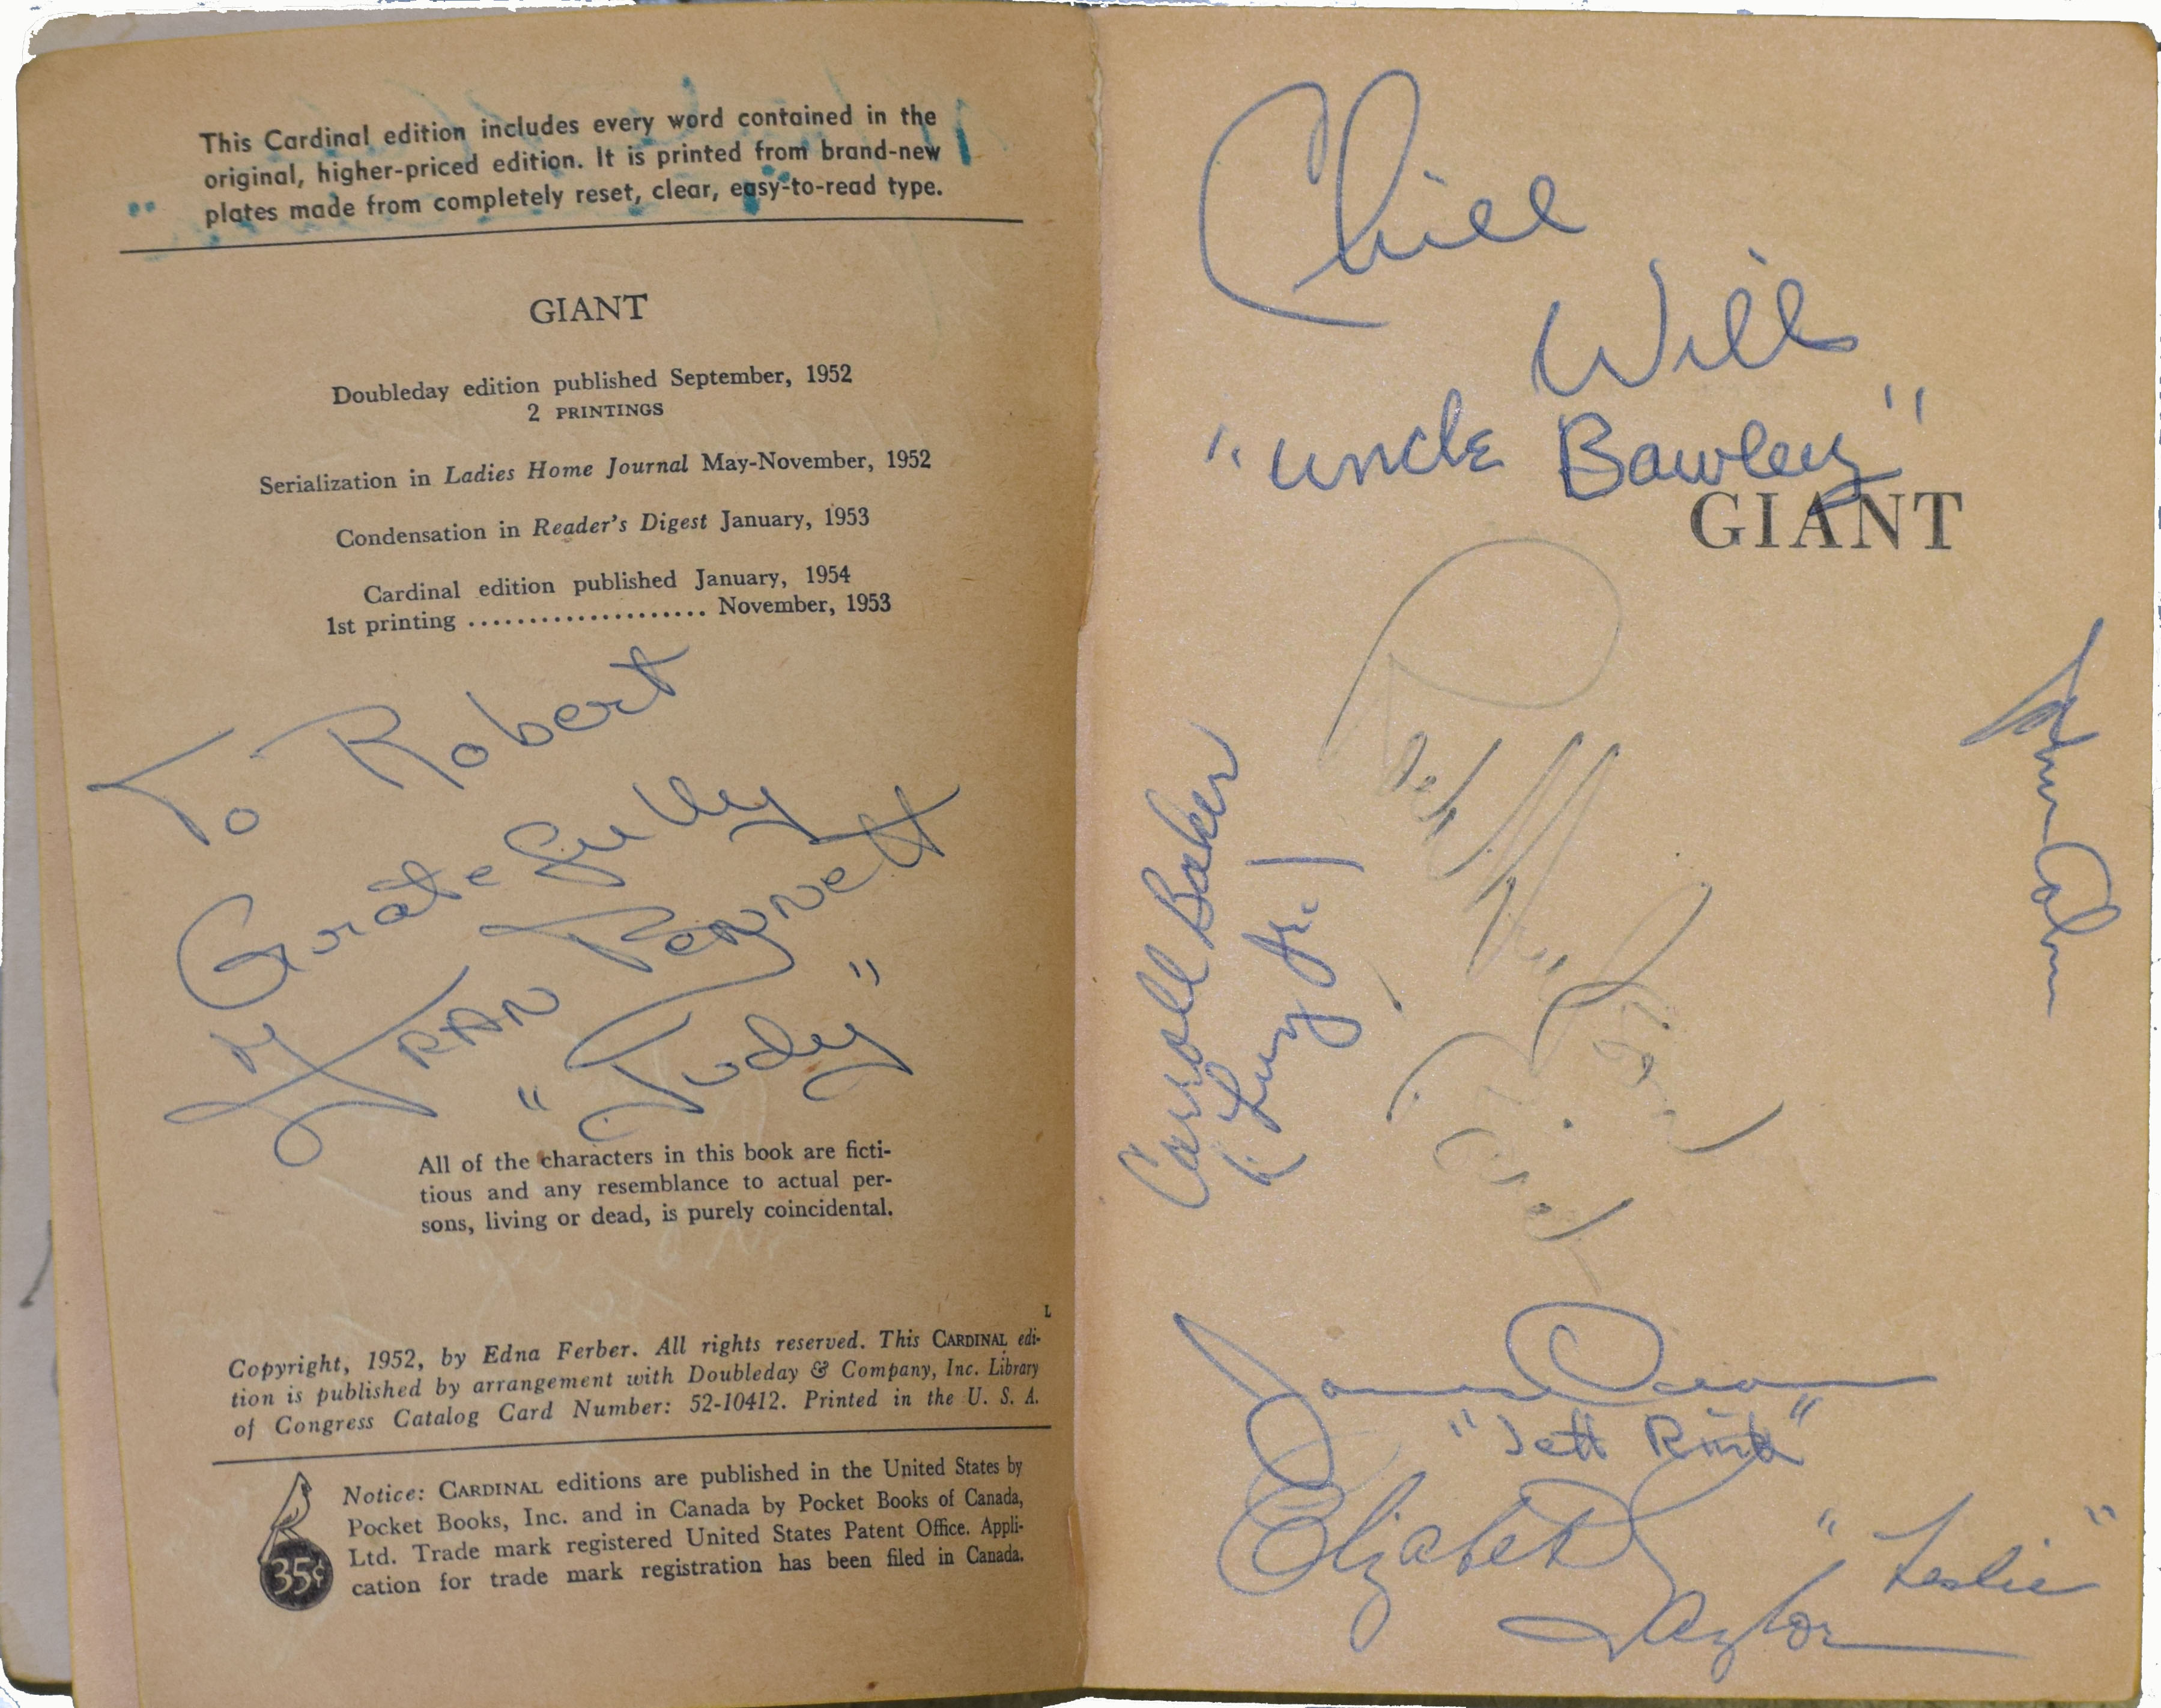 Incredible Crew Signed Copy Of Giant By The